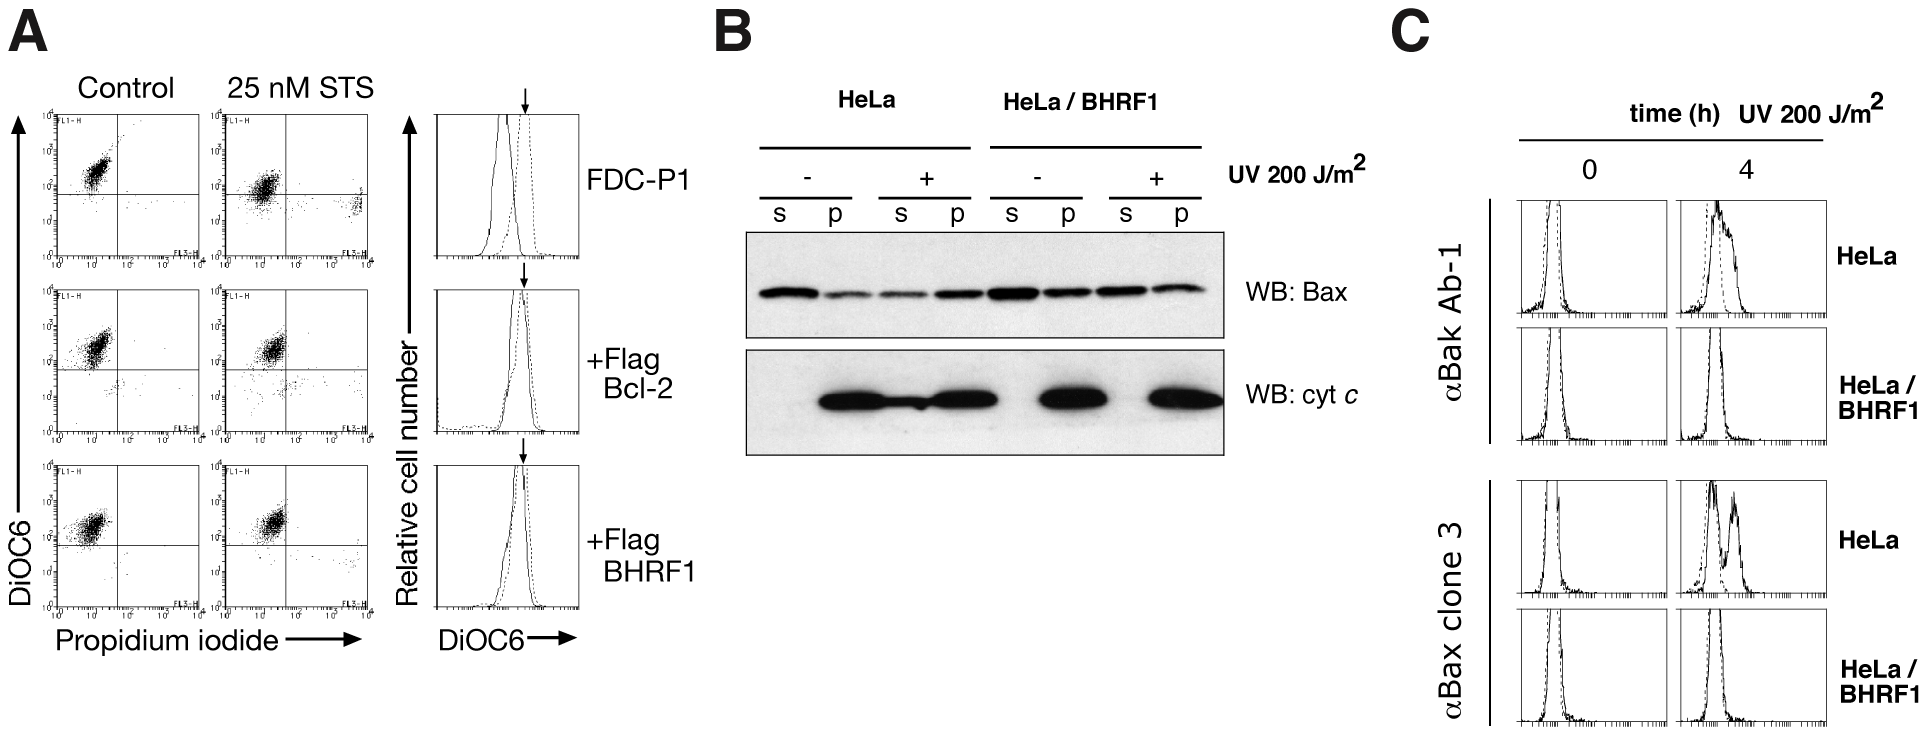 BHRF1 inhibits loss of mitochondrial transmembrane potential and Bax/Bak activation.